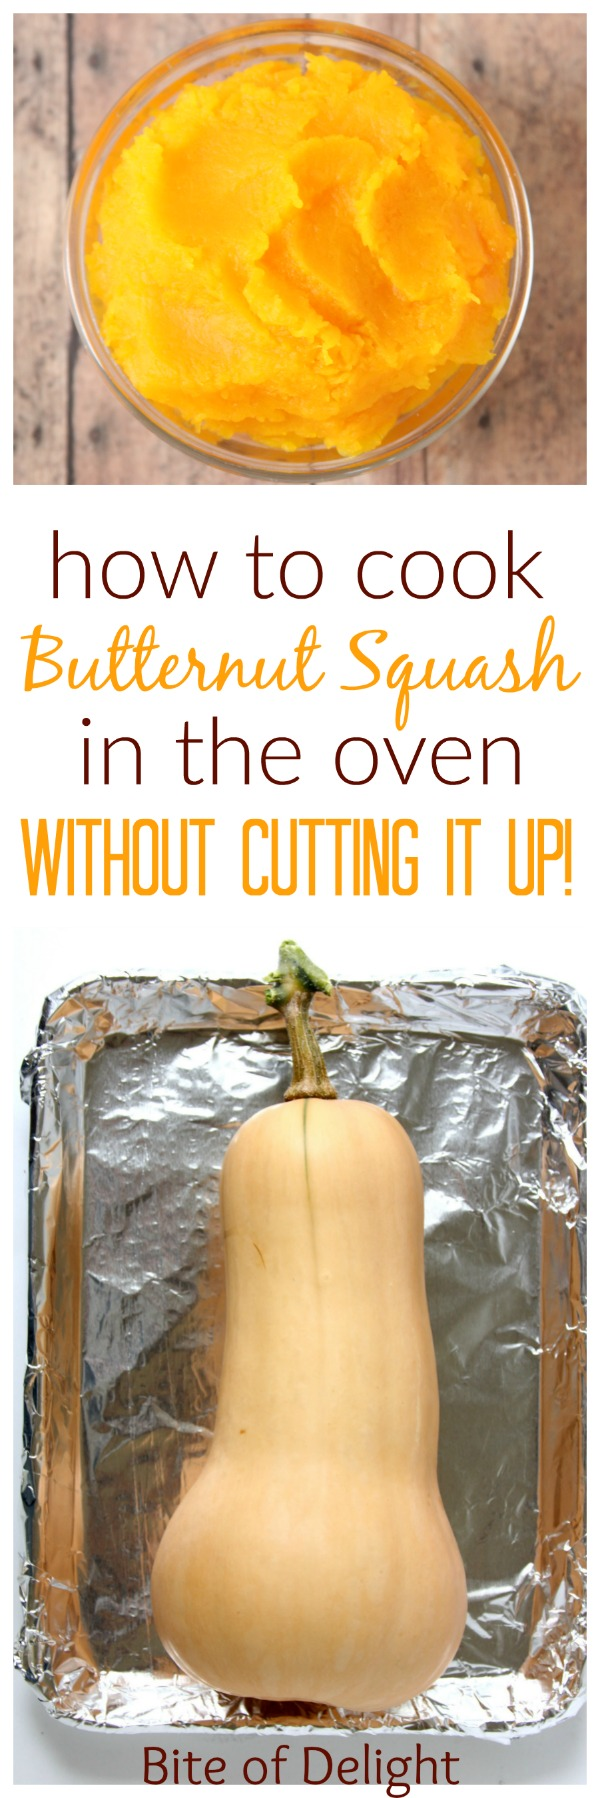 How to roast a whole butternut squash in the oven   Easy Recipe   Tutorial